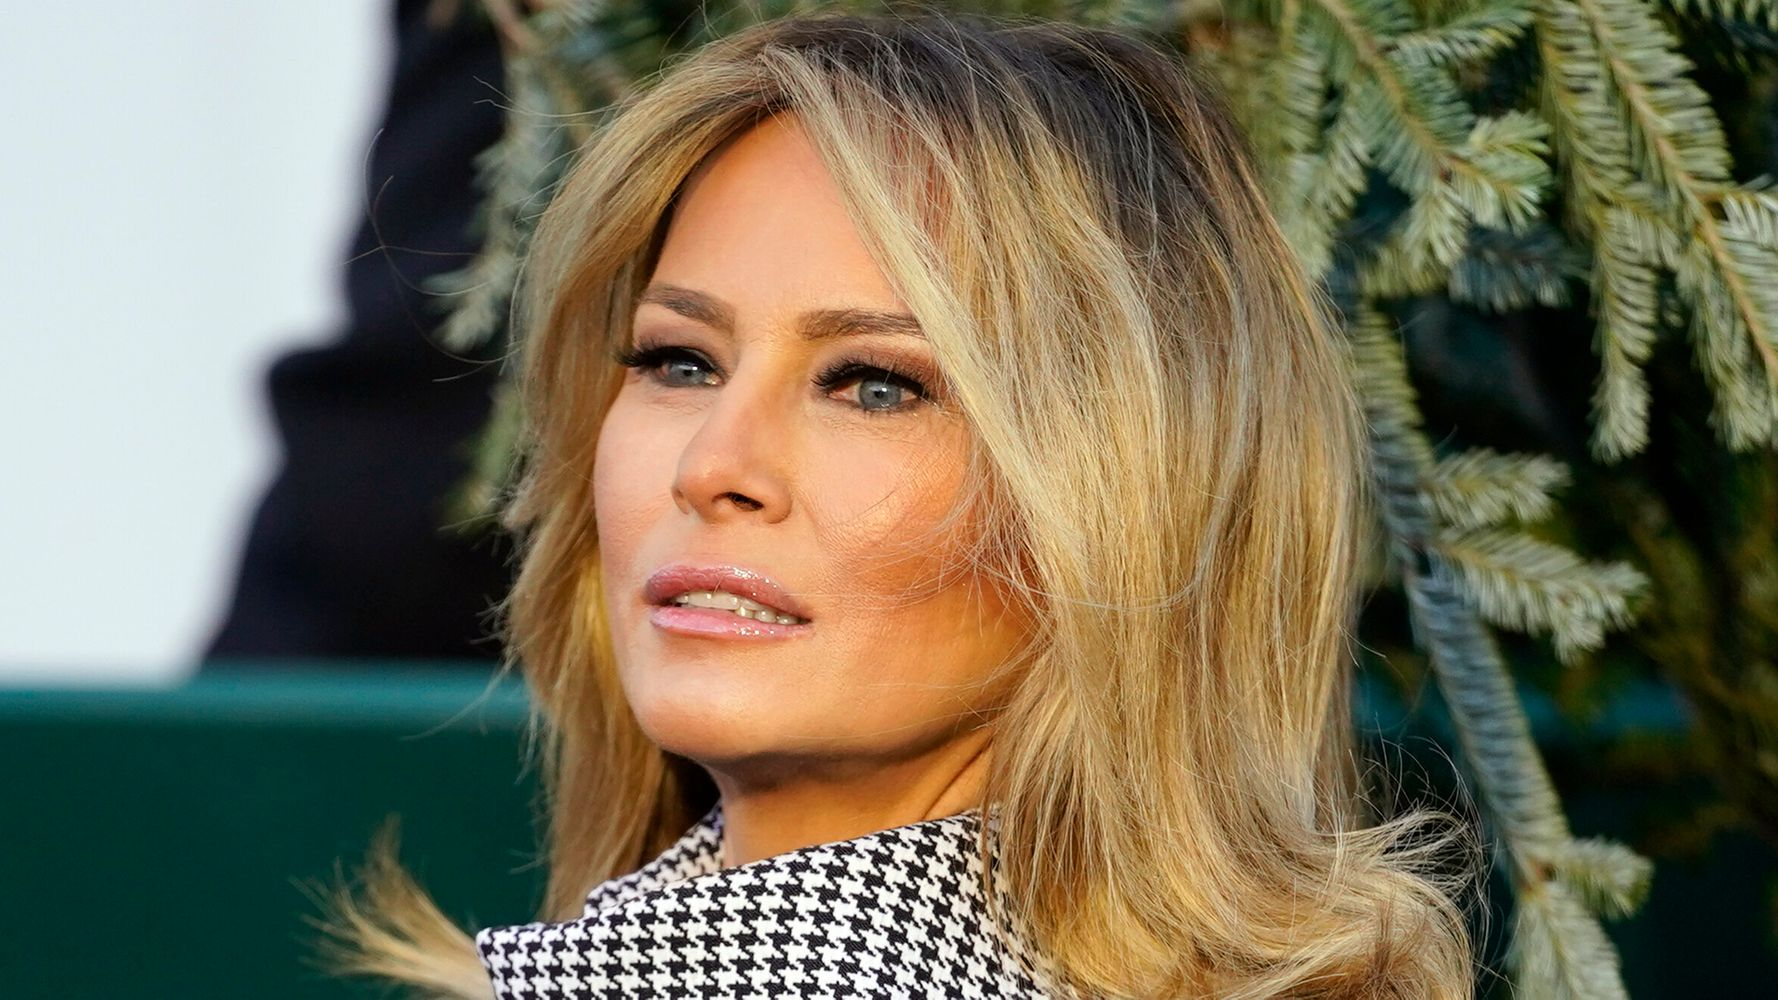 Twitter Users Have Some Mocking Title Ideas For Melania Trump's Reported Memoir